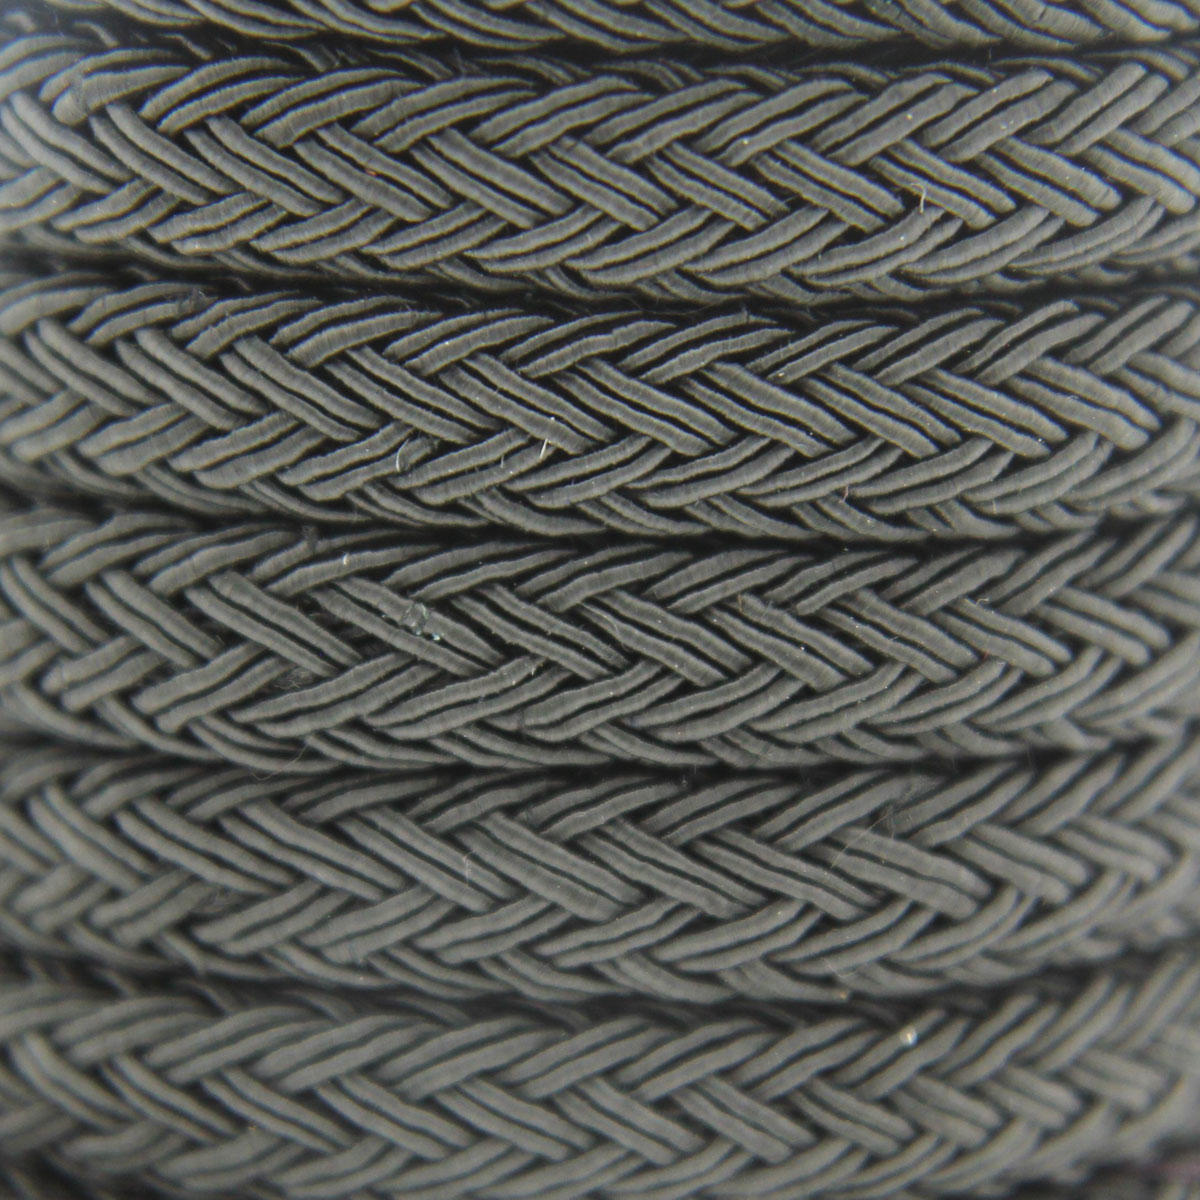 Black Braided Cord